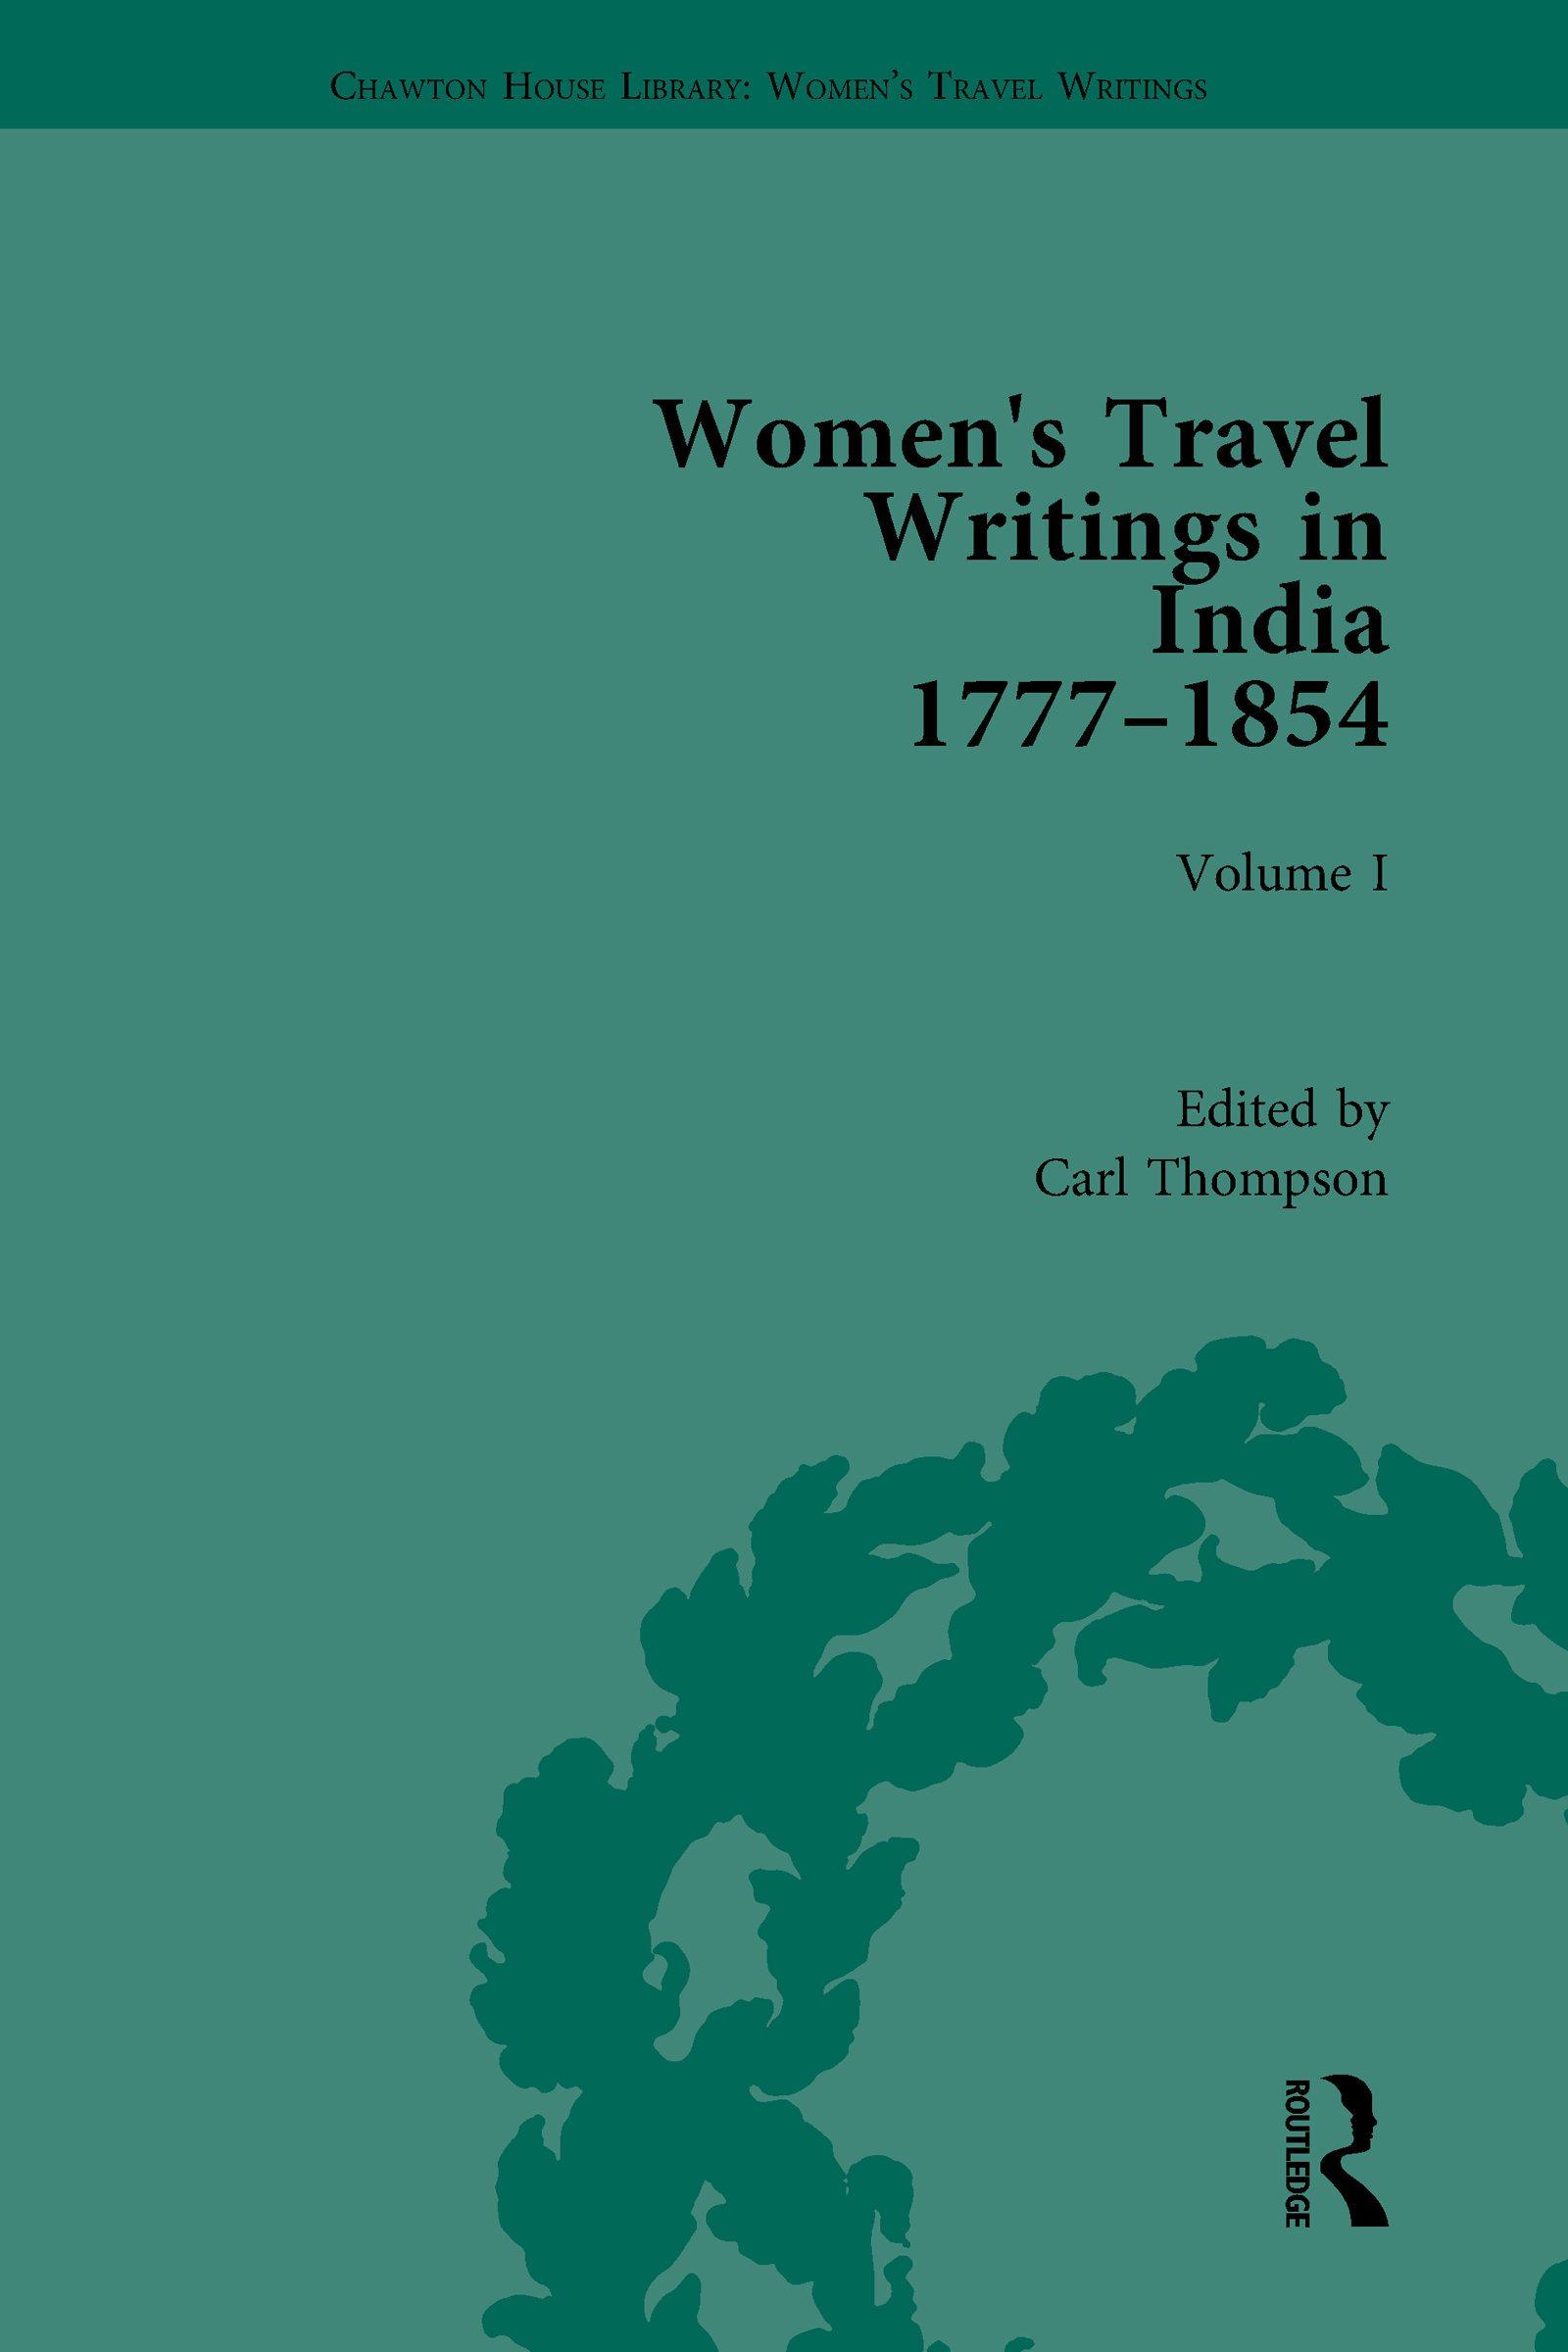 Women's Travel Writings in India 1777-1845: Volume I: Jemima Kindersley, Letters from the Island of Teneriffe, Brazil, the Cape of Good Hope and the East Indies (1777); and Maria Graham, Journal of a Residence in India (1812) book cover